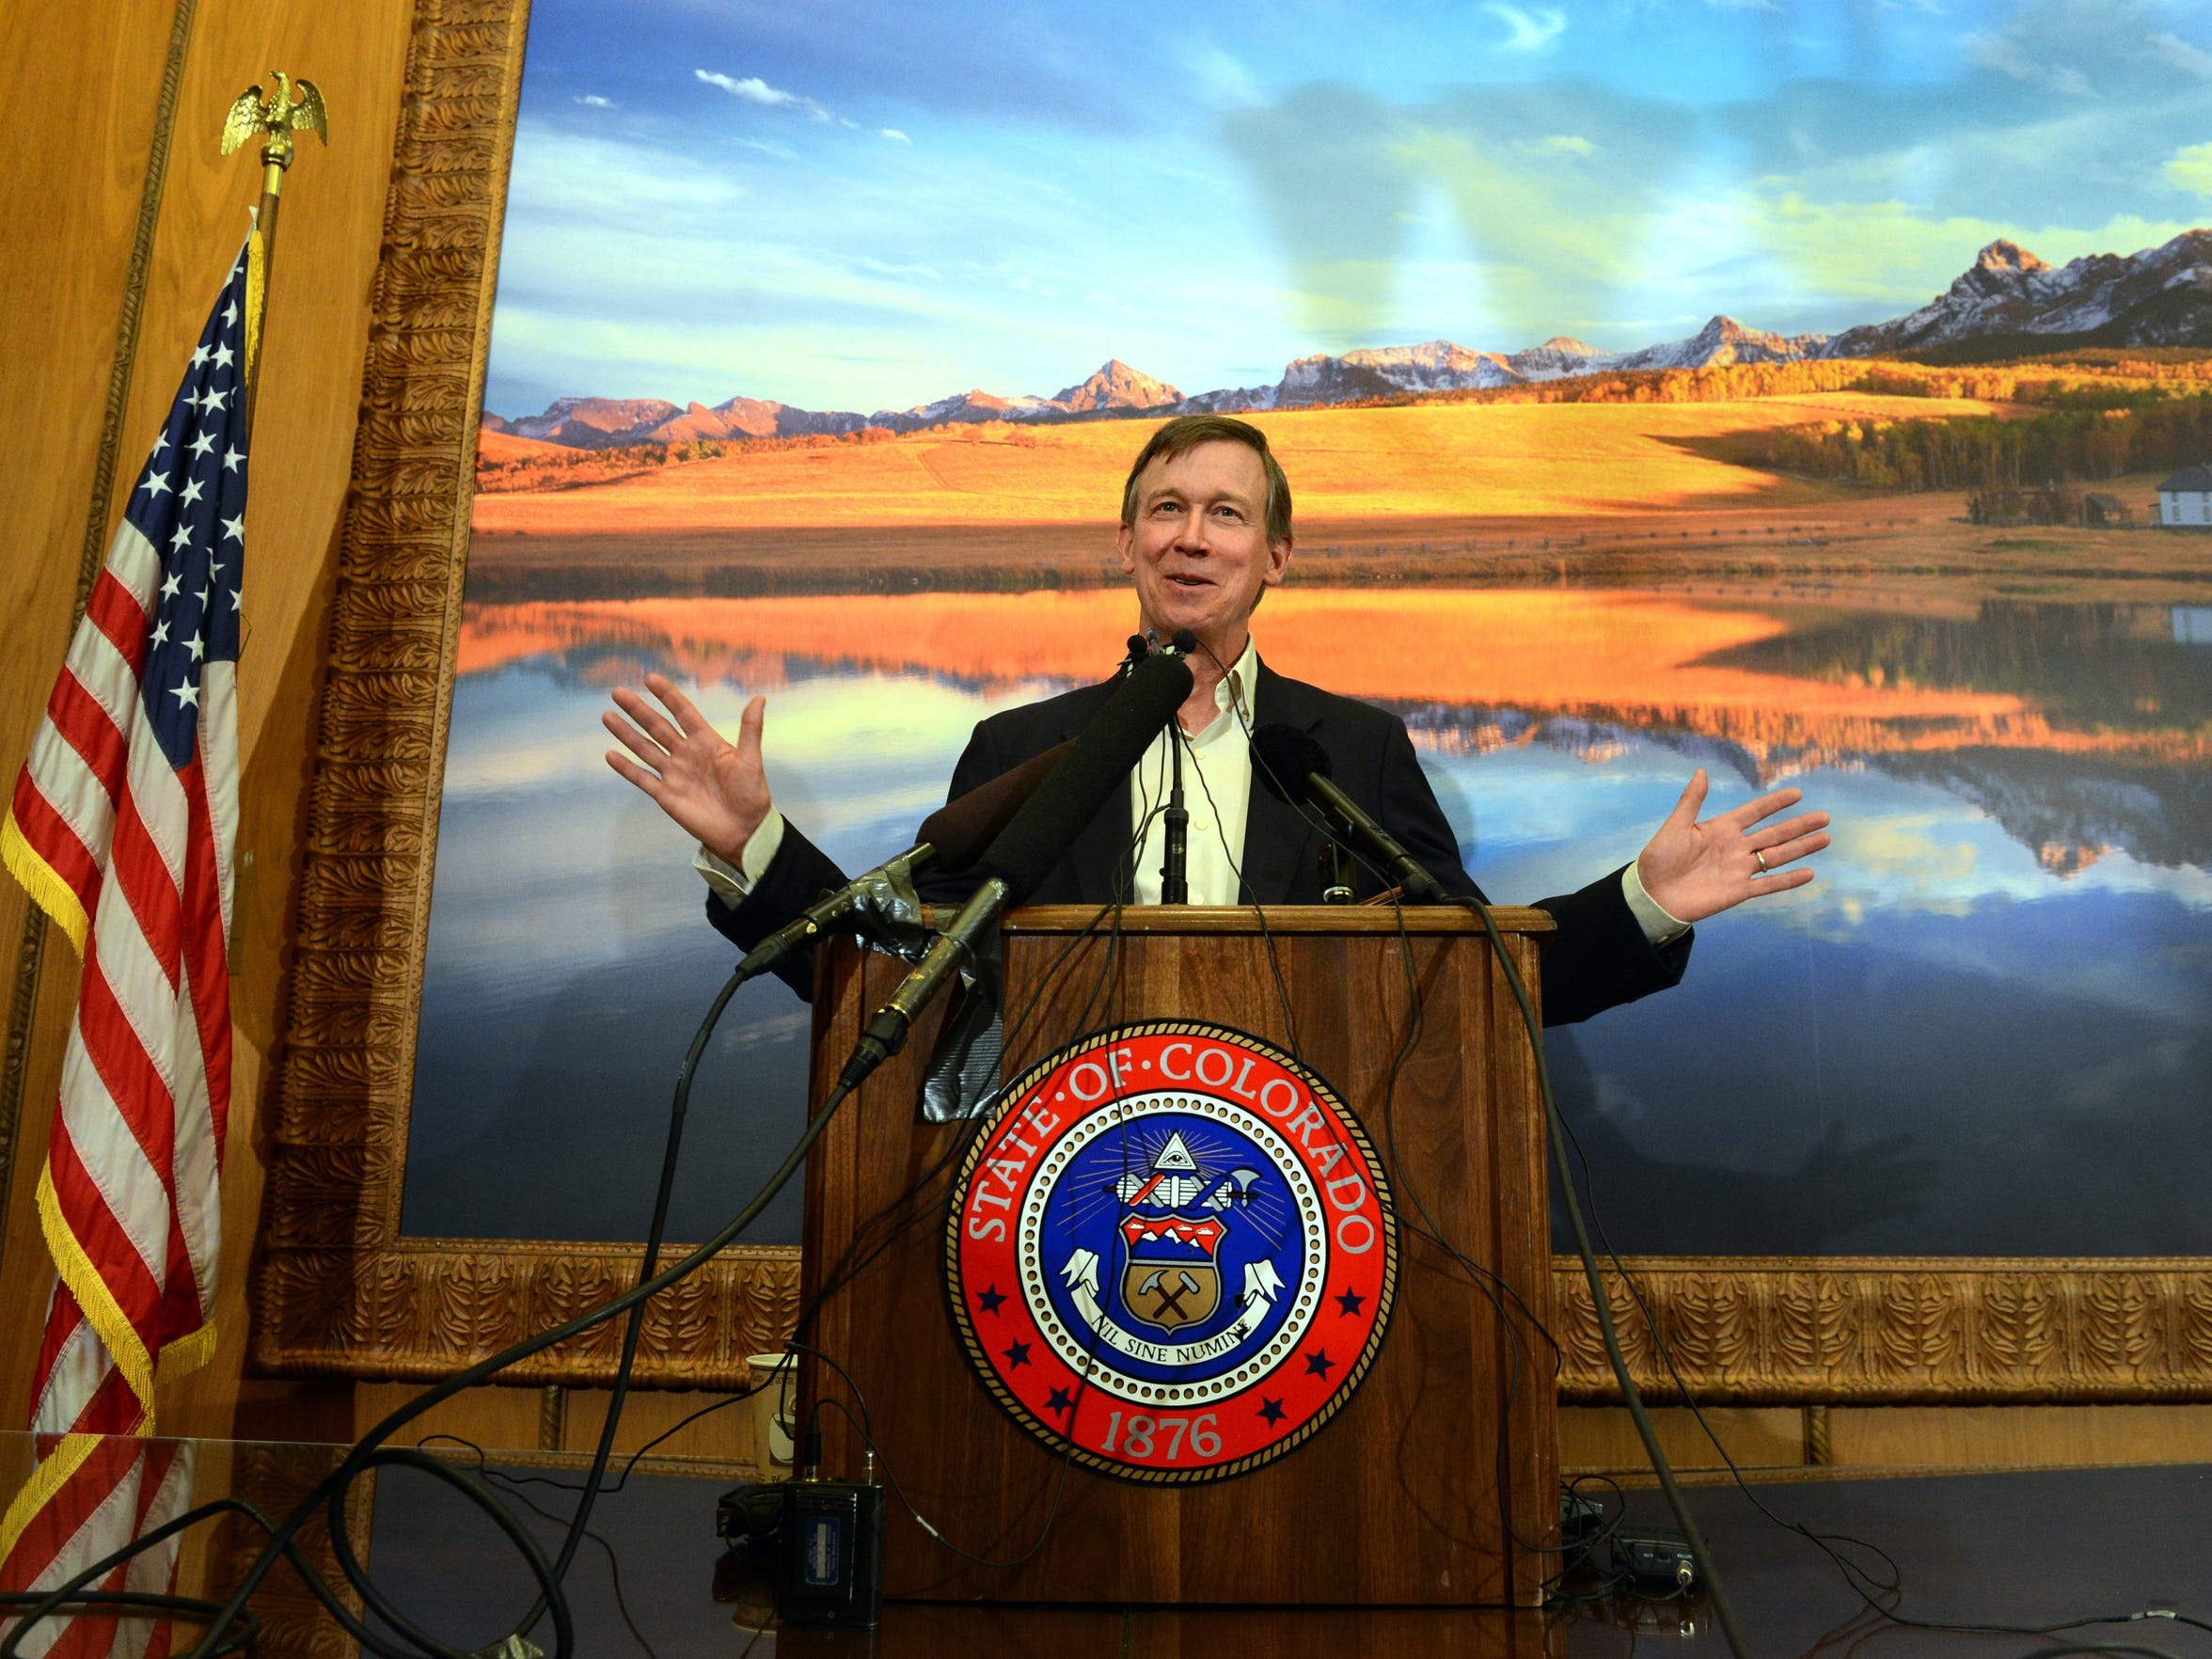 Gov. John Hickenlooper talks about Amendment 64 at the State Capitol in Denver, Monday, Dec. 10, 2012. Marijuana for recreational use became legal in Colorado Monday, when Hickenlooper took a purposely low-key procedural step of declaring the voter-approved change part of the state constitution.